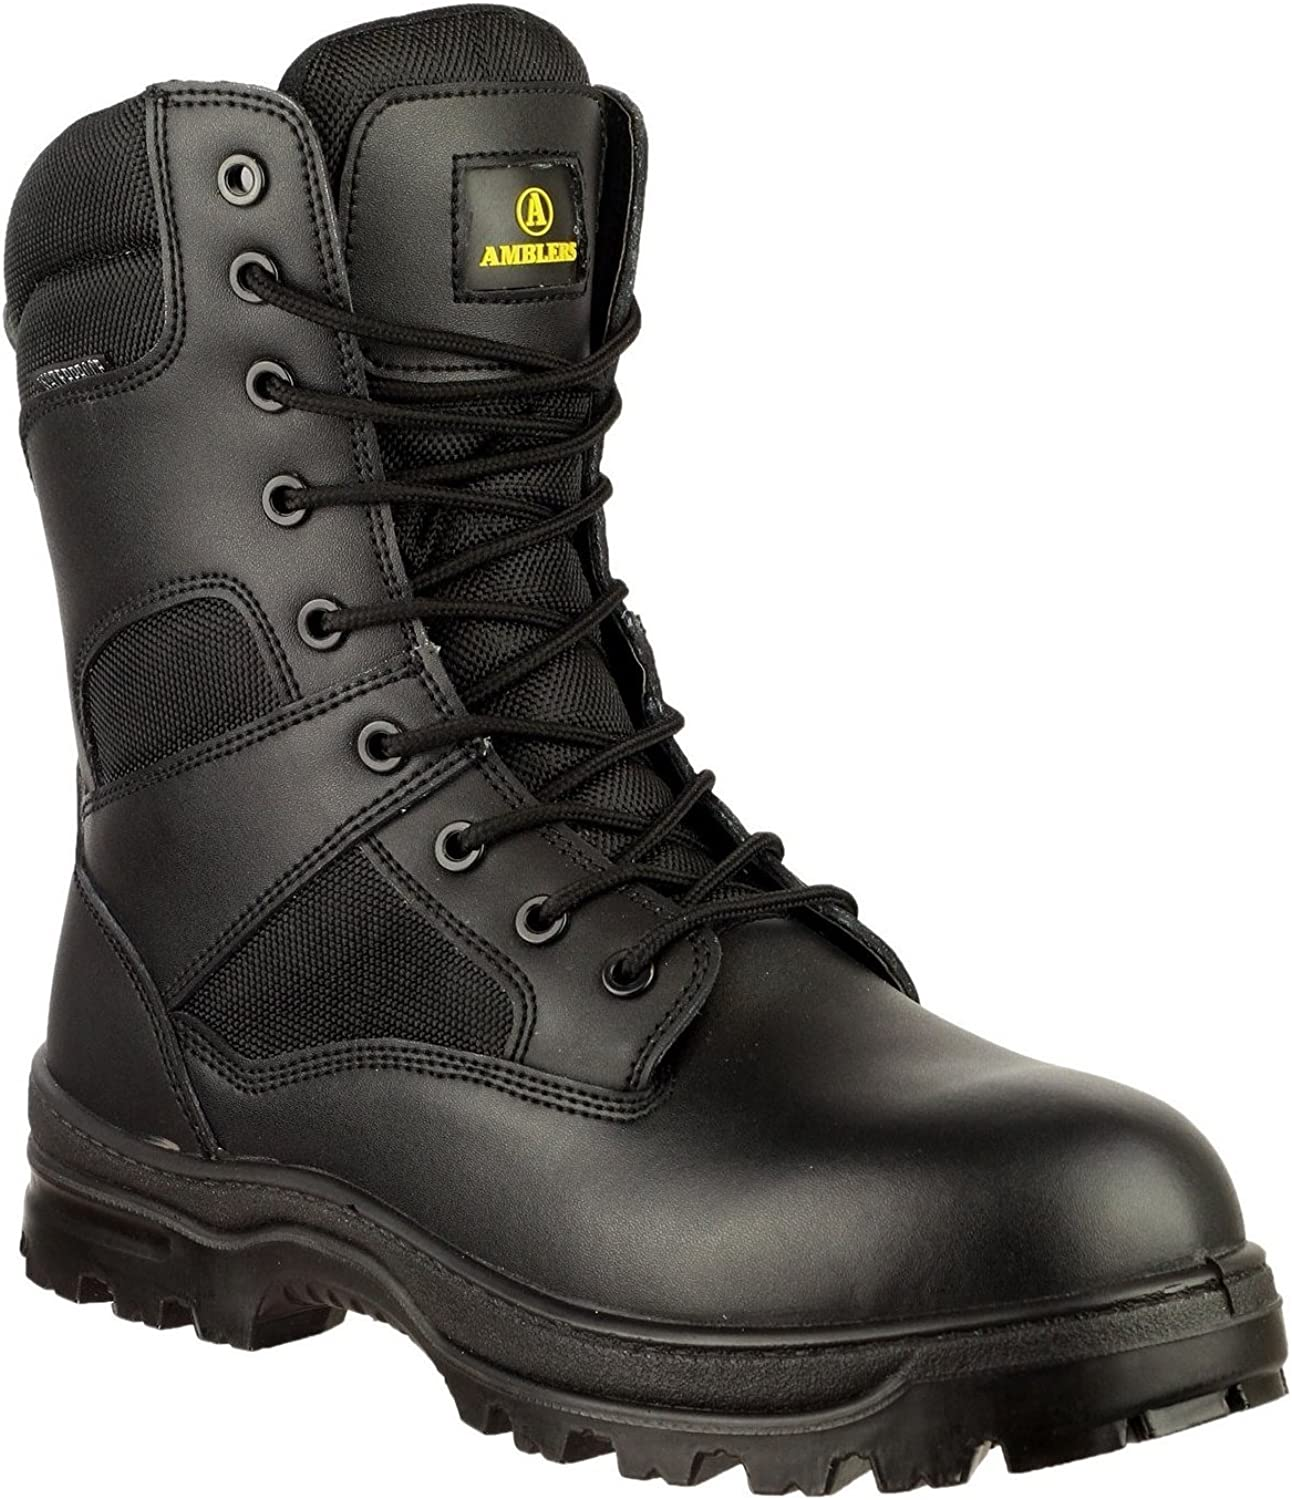 Amblers Mens Waterproof Black Leather Metal Free Combat Boots Sizes 7 to 14